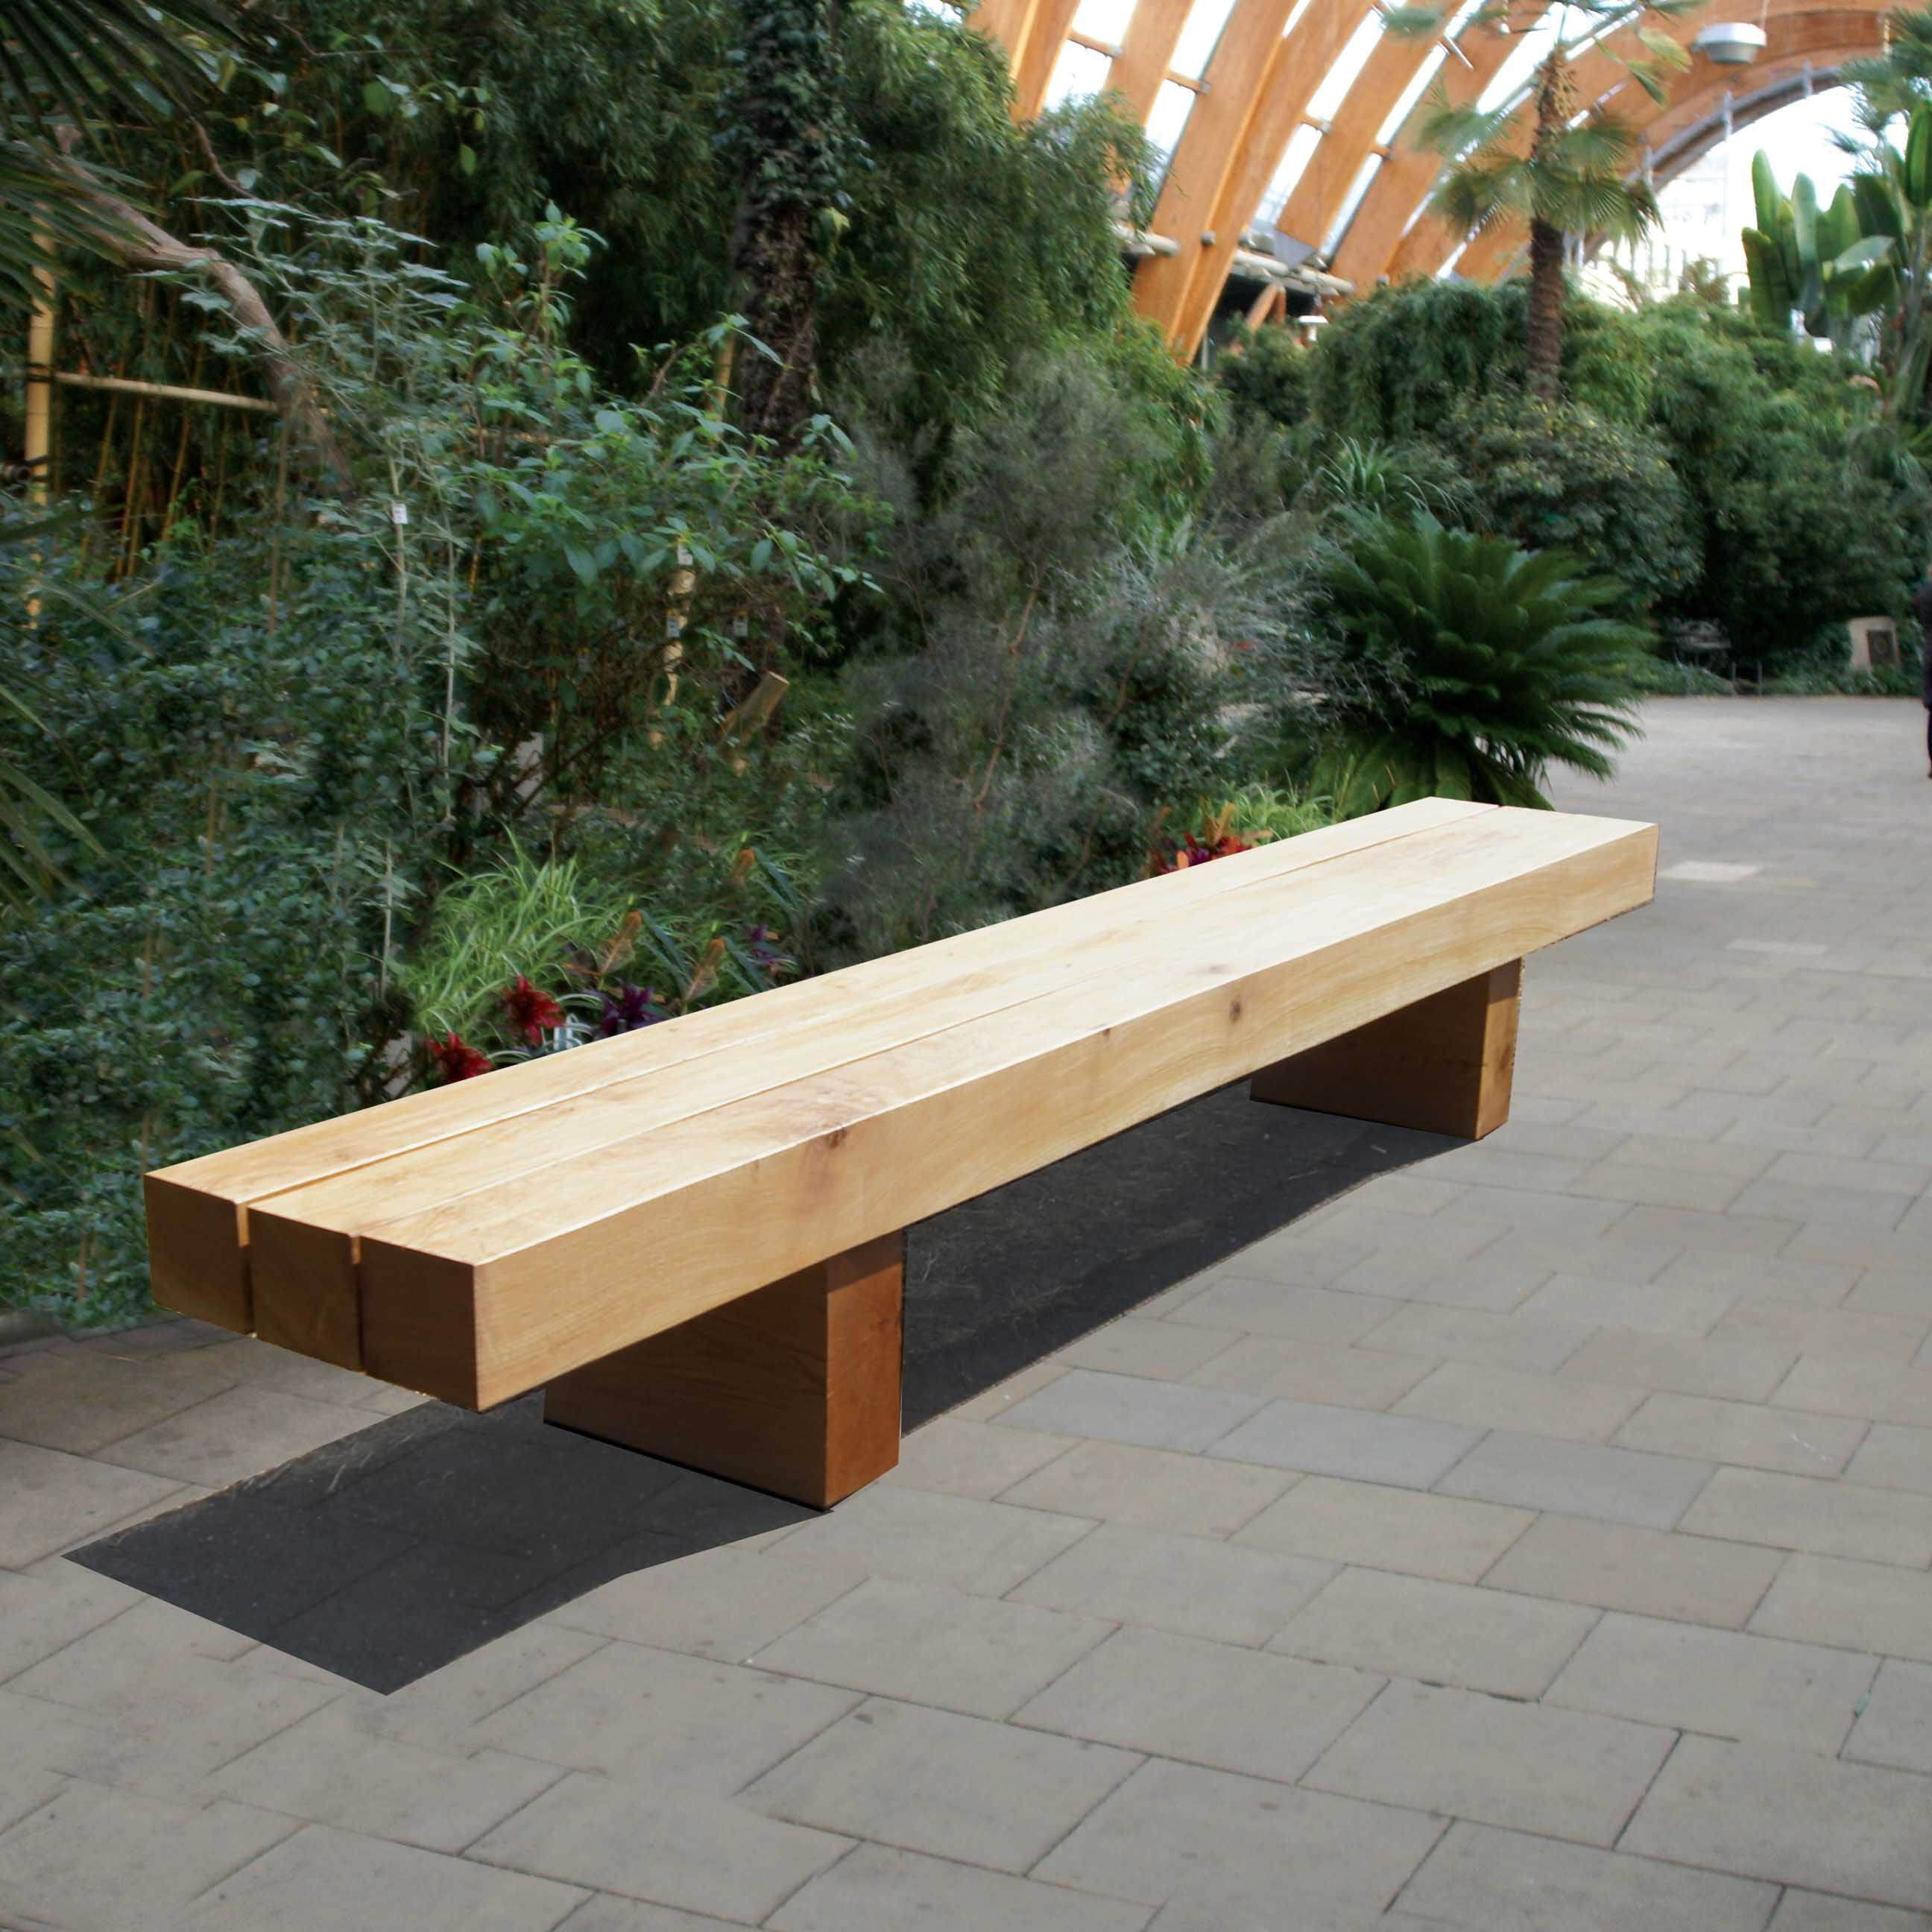 This Rustic Green Oak Bench Offers A Strong And Low